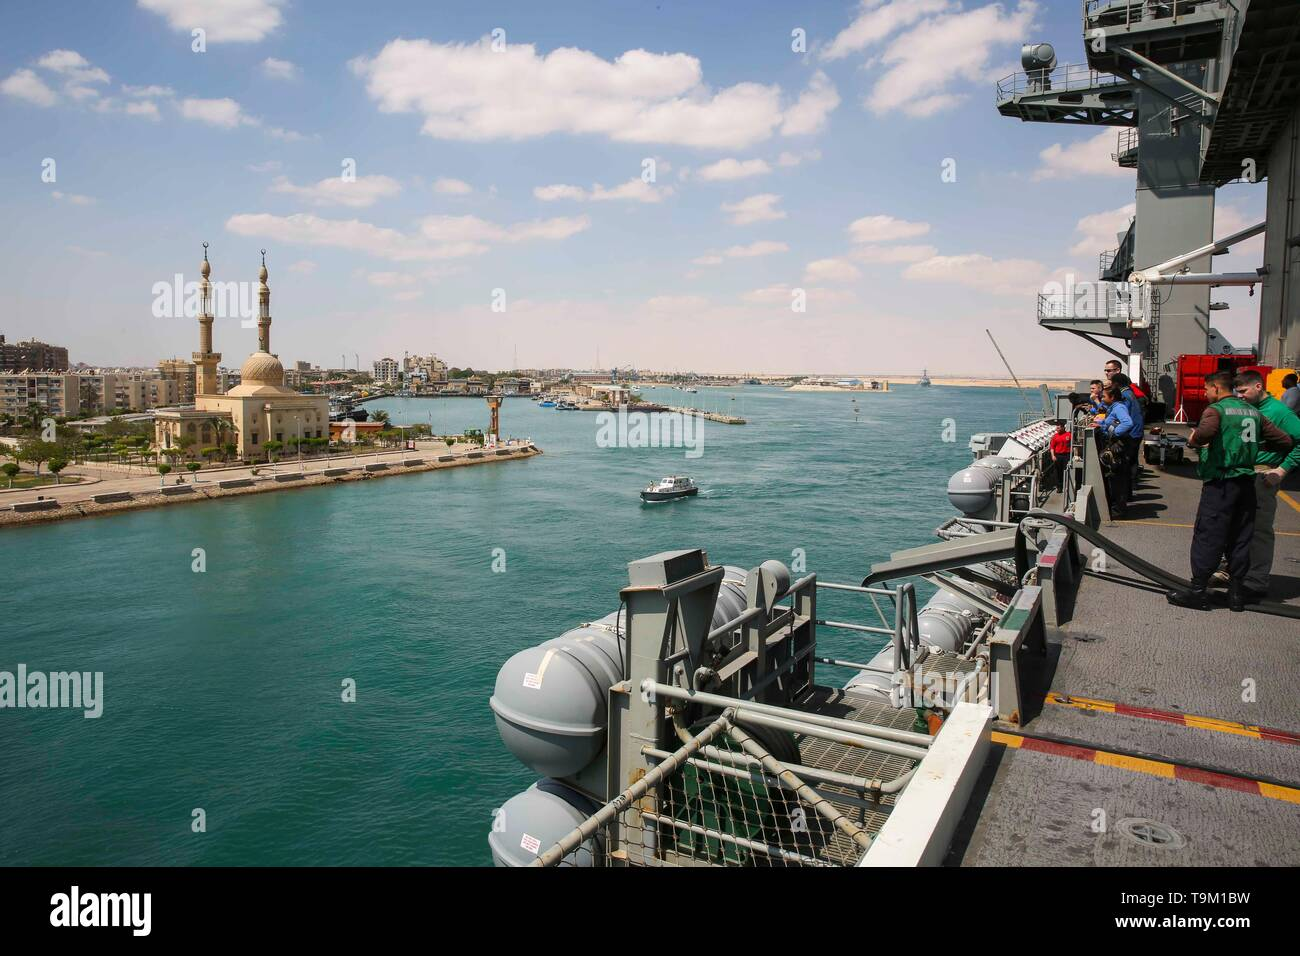 View of a mosque from onboard the U.S. Navy Nimitz-class aircraft carrier USS Abraham Lincoln as it transits the Suez Canal May 9, 2019 in the Suez, Egypt. The aircraft carrier is part of additional forces being sent to the Middle East to counter what the Trump administration calls clear indications of threats from Iran. - Stock Image